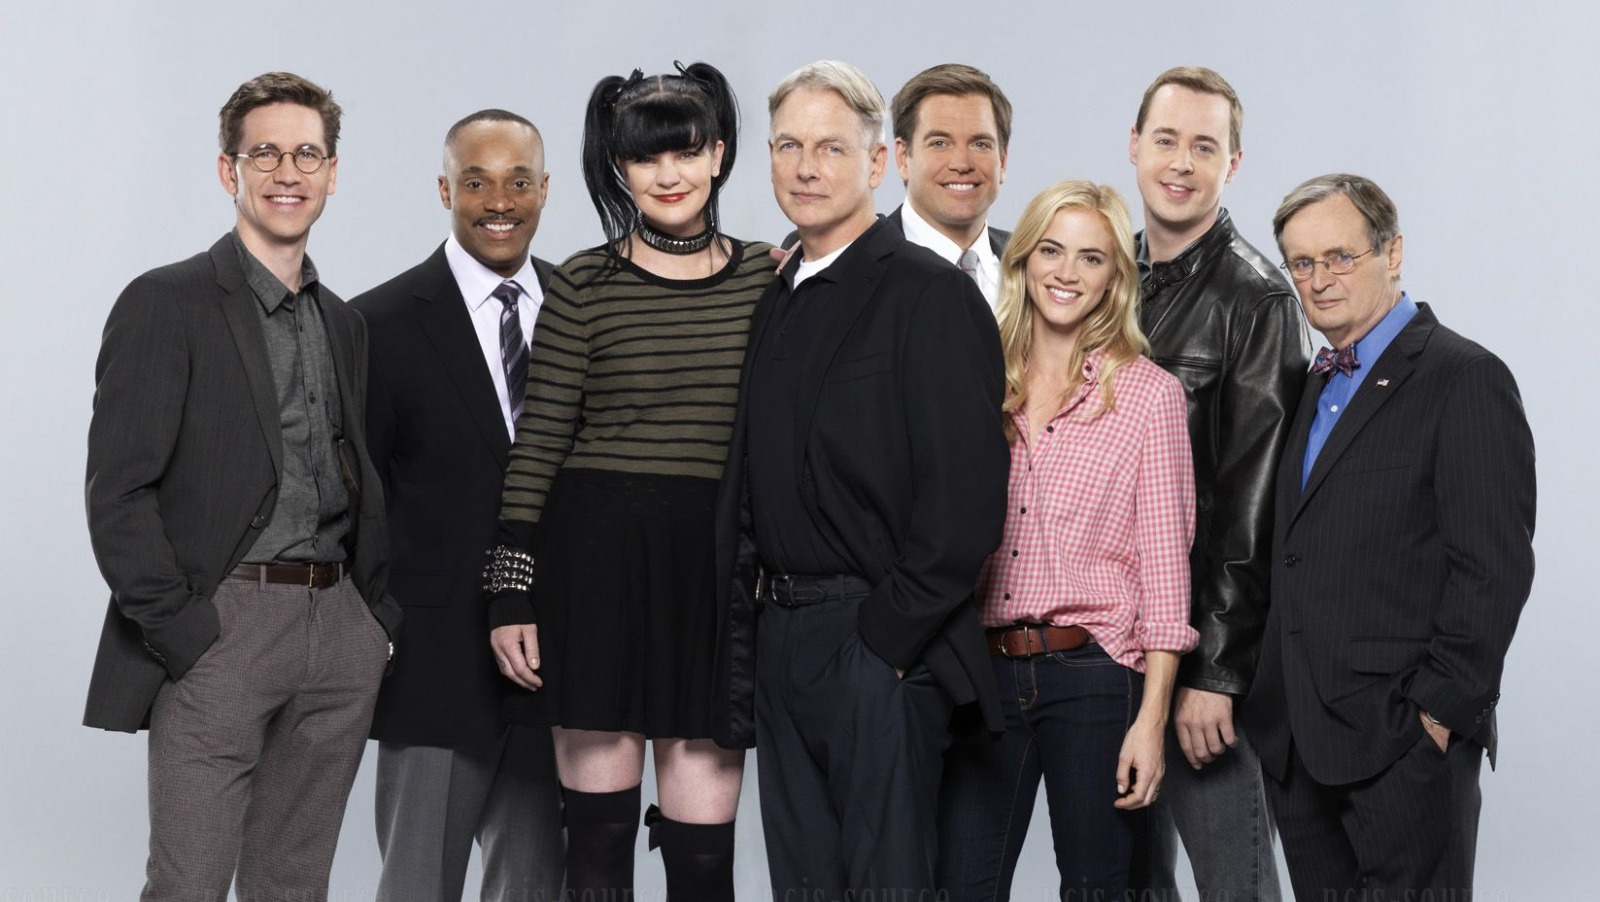 NCIS Storylines That Fans Hated